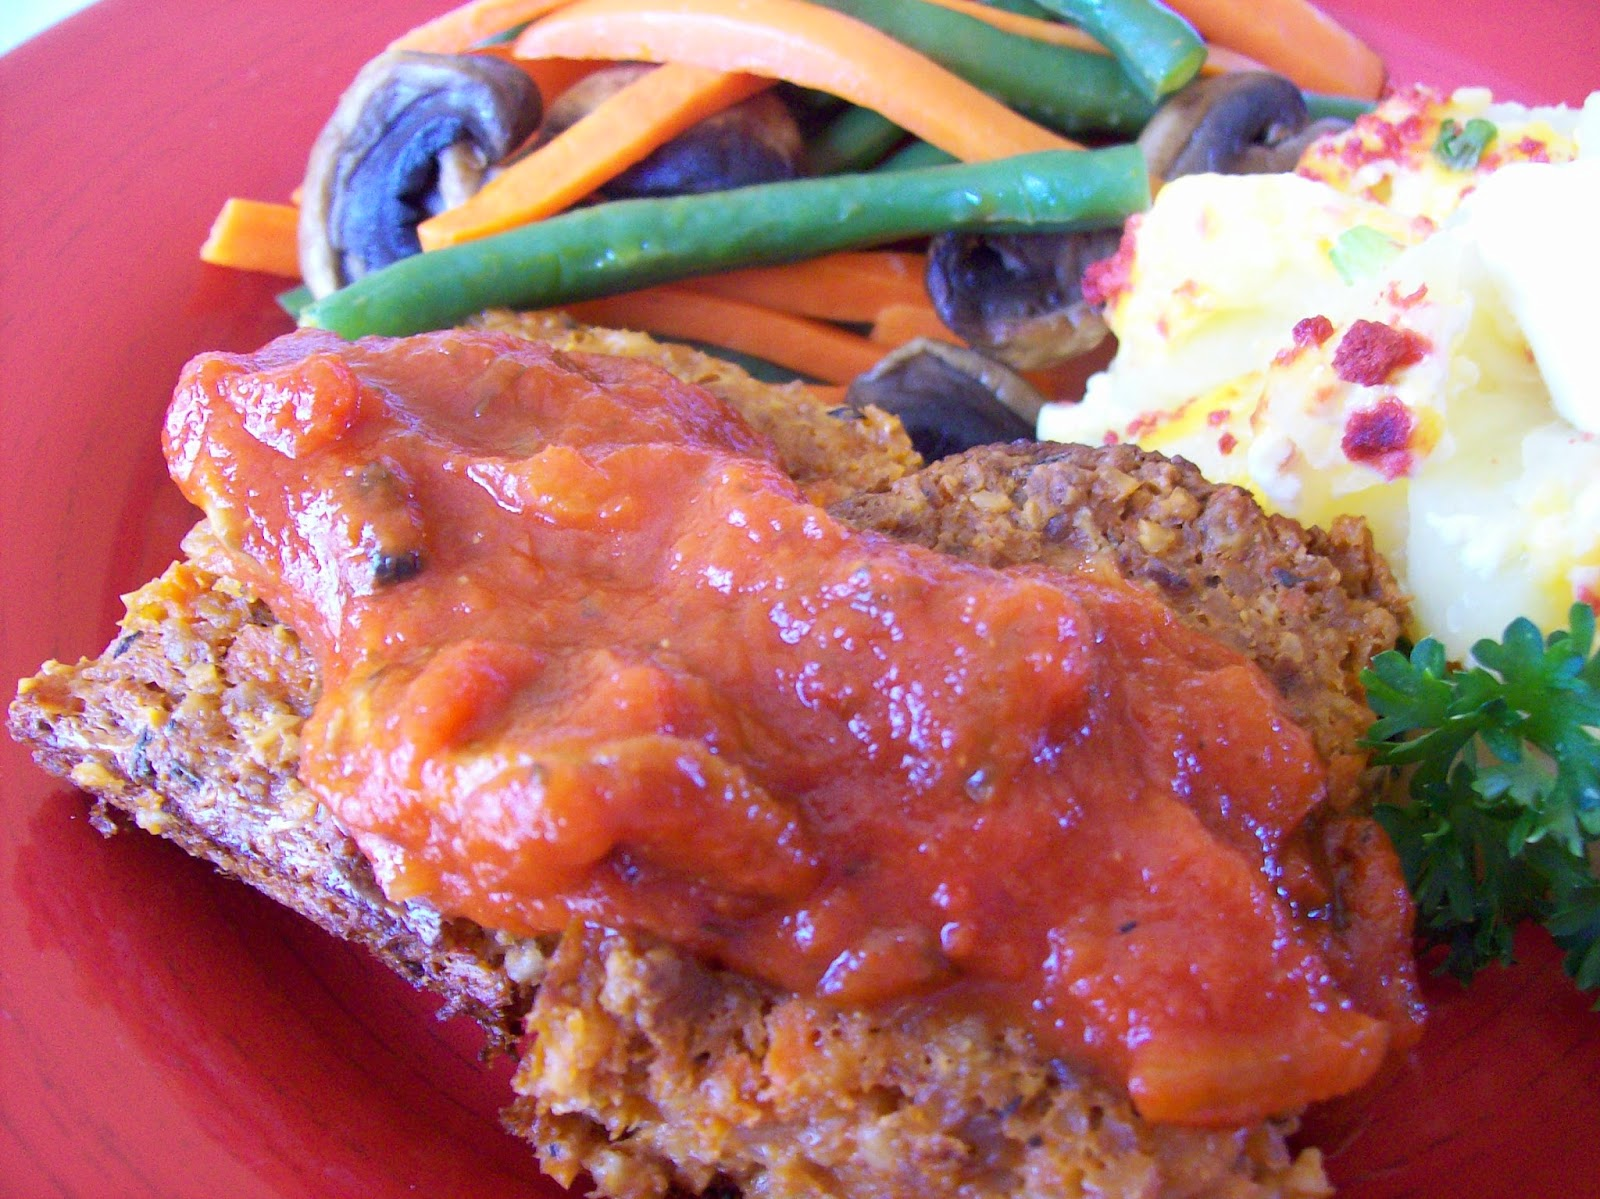 Meatless Loaf with potatoes and vegetables.